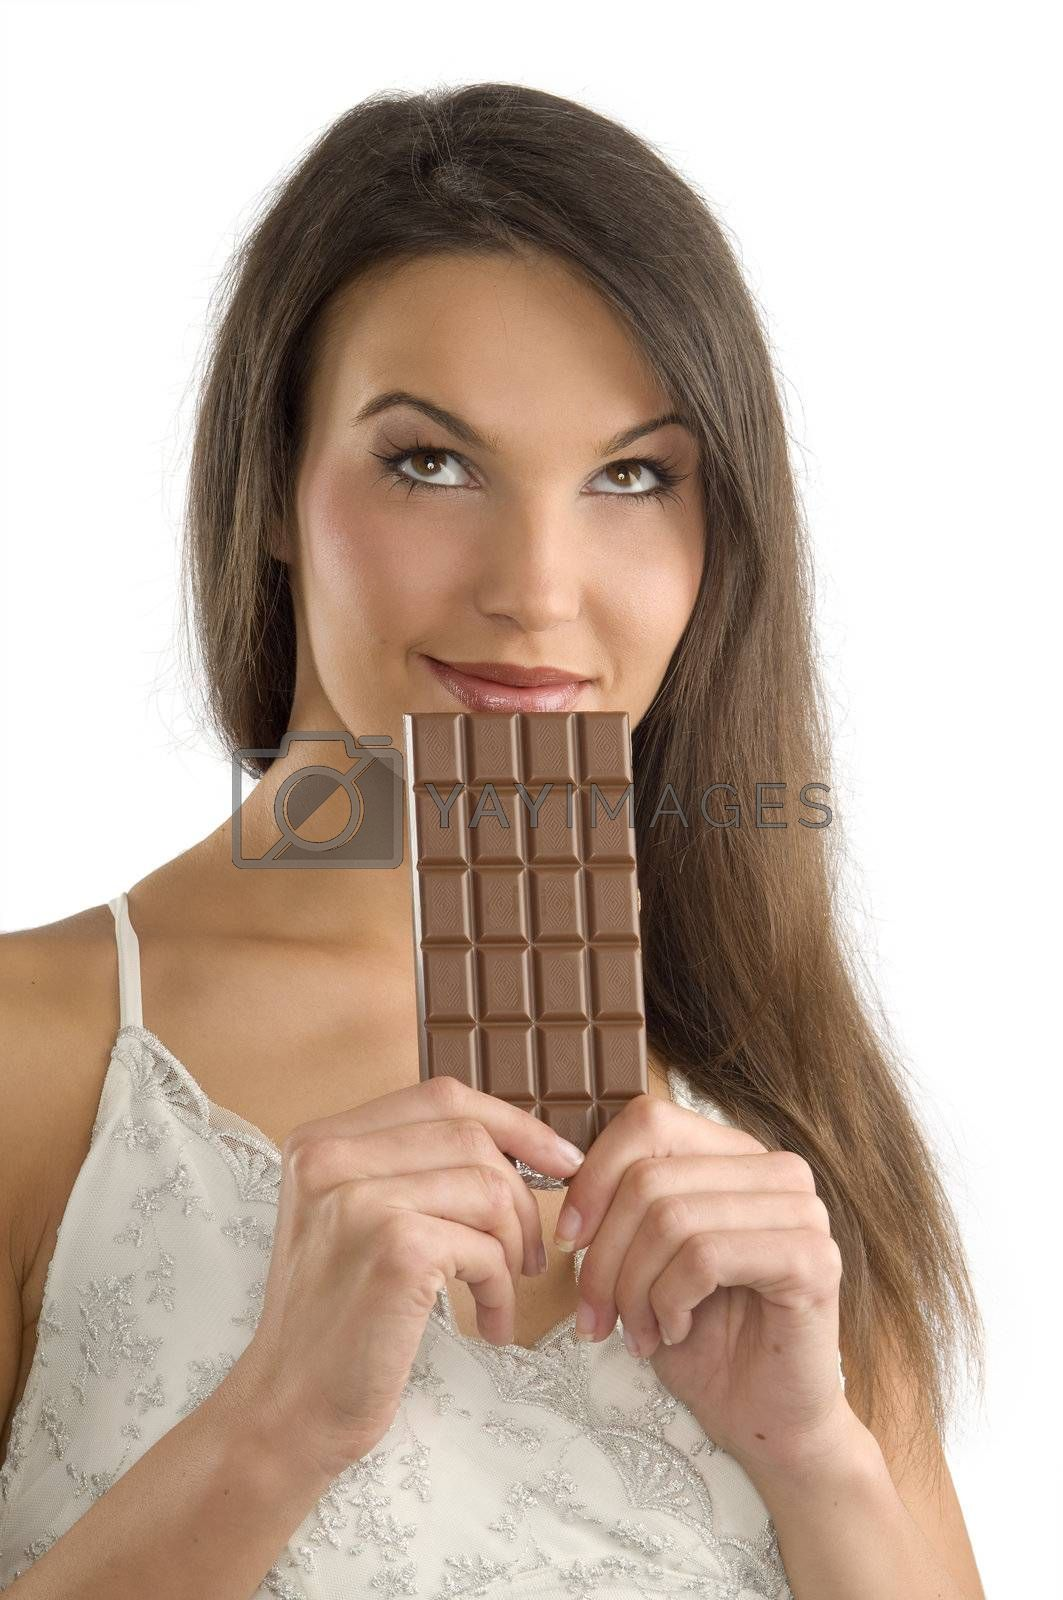 pretty brunette thinking about to eat or not  a block of chocolate